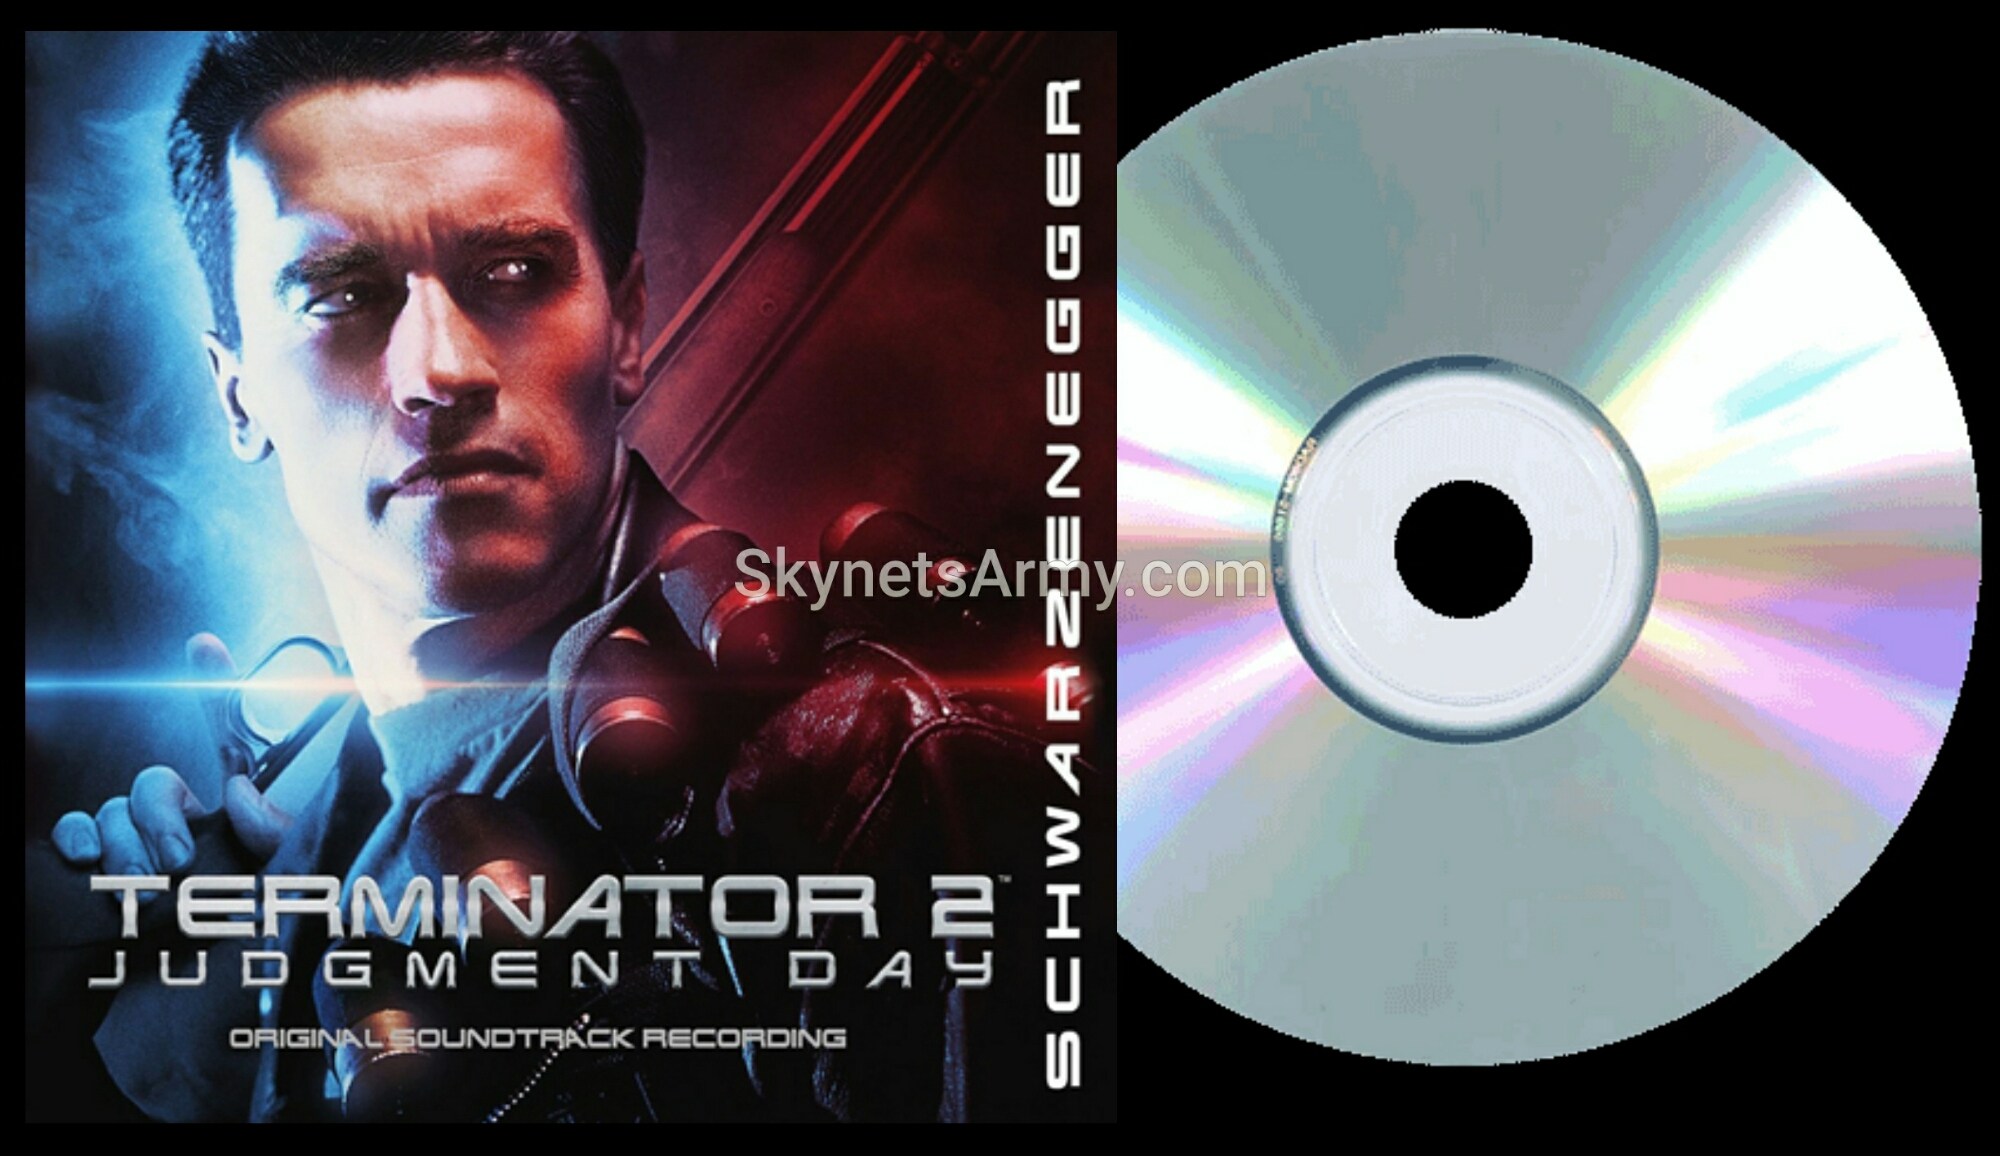 Terminator 2 Judgment Day 3d Soundtrack Coming On Cd